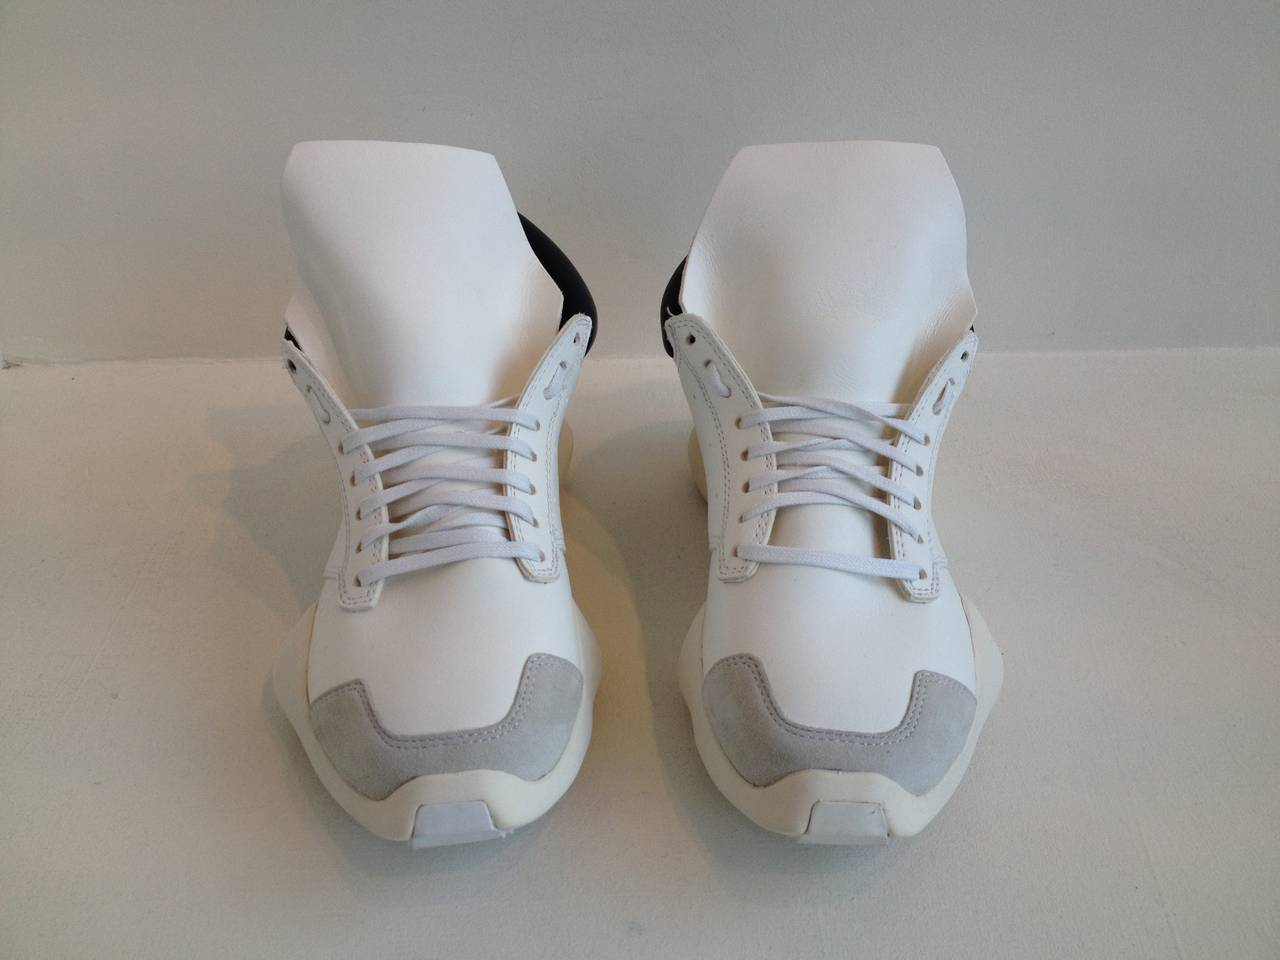 Rick Owens for Adidas White Puffy Sneakers 2